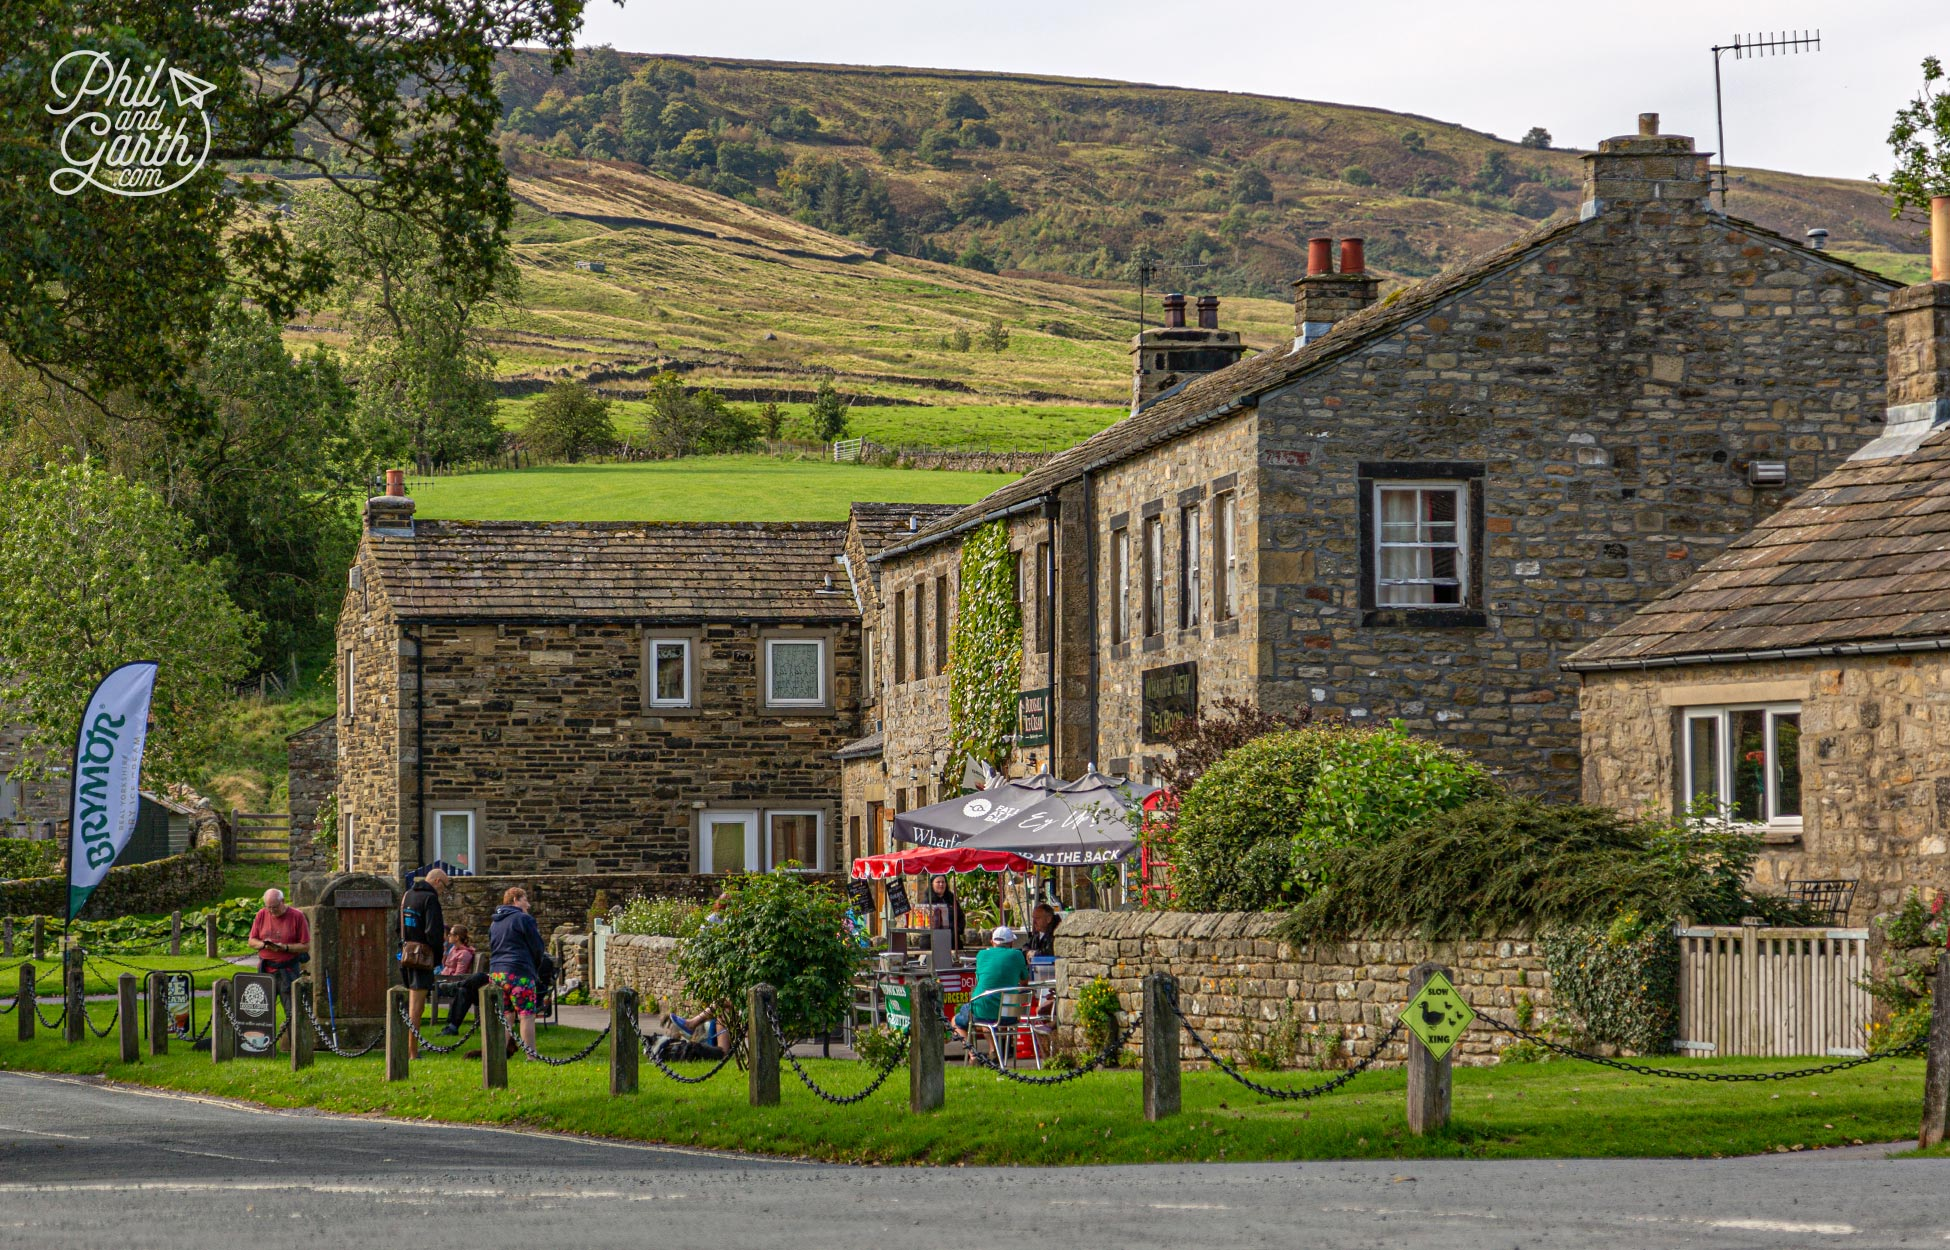 A small tea room and ice cream shop in Burnsall Yorkshire Dales